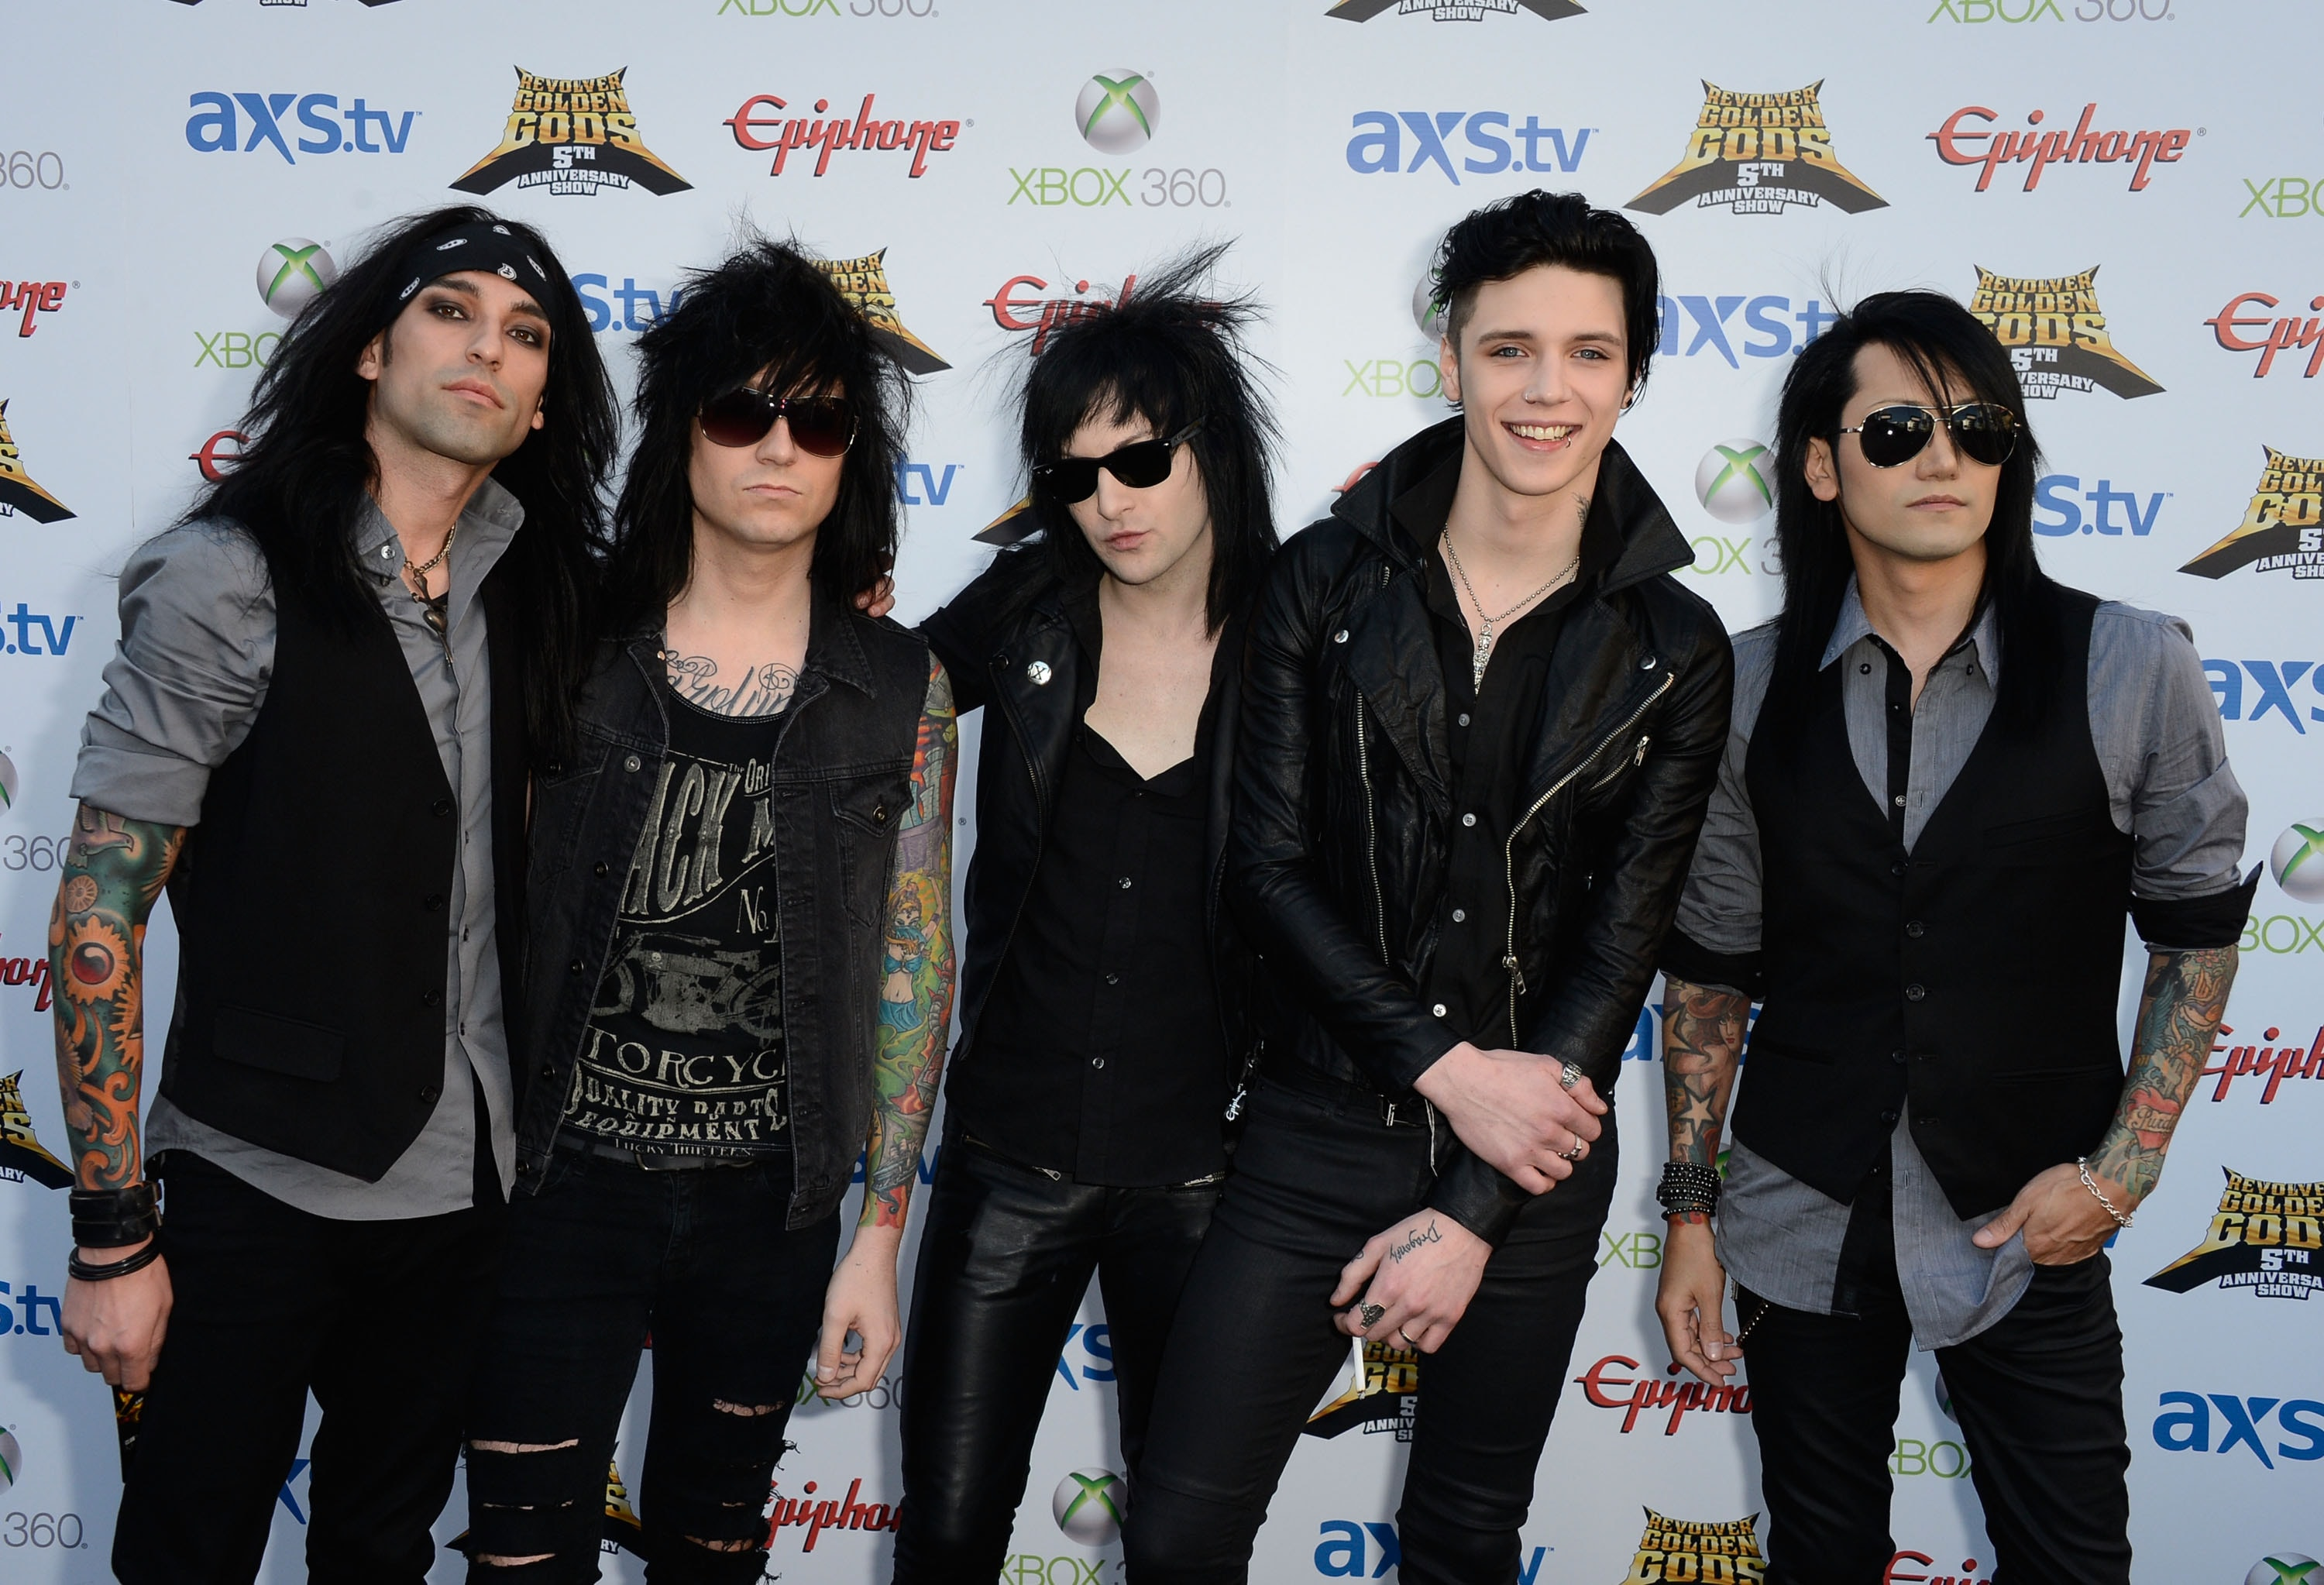 Black Veil Brides Release Album Title Launch Pledgemusic Campaign